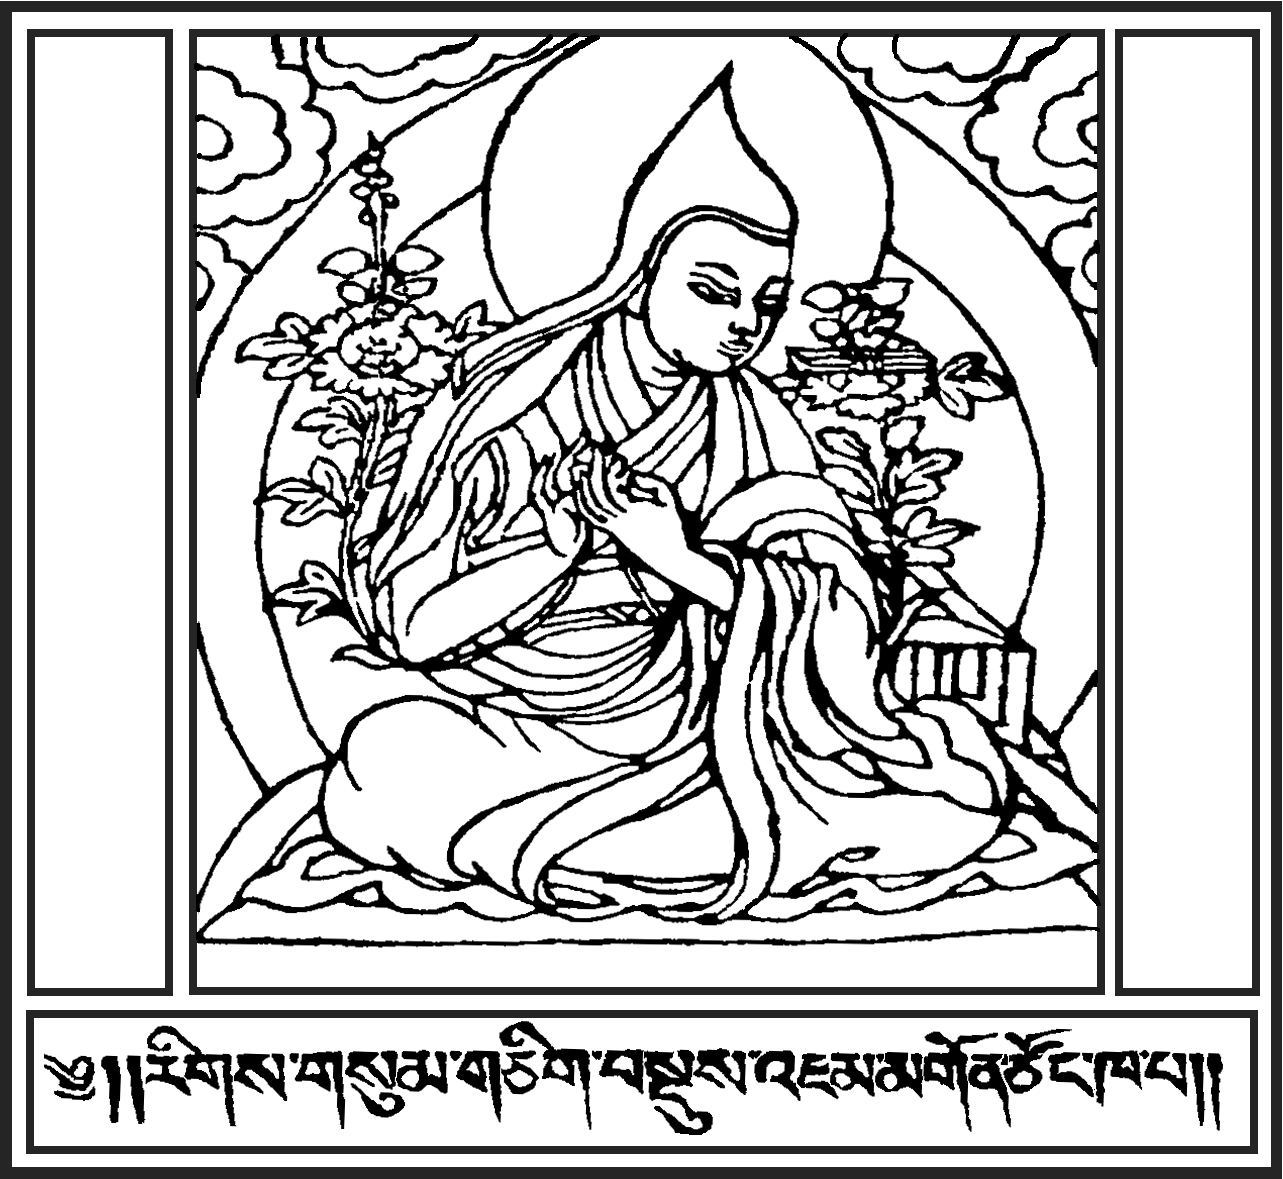 "Je Tsongkapa (1357-1419) - Je Tsongkapa (1357-1419), also known as Je Rinpoche Lobsang Drakpa, was perhaps the single greatest commentator in the 2,500 year history of Buddhism. He was born in the district of Tsongka in eastern Tibet, and took his first vows at a tender age. As a teenager he had already mastered much of the teachings of Buddhism, and was sent by his tutors to study at the great monastic universities of Central Tibet. Here he studied under the leading Buddhist scholars of his day; it is said as well that he enjoyed mystic visions in which he met and learned from the different forms of the Buddha himself.The 18 volumes of Tsongkapa's collected works contain eloquent and incisive commentaries on virtually every major classic of ancient Buddhism, as well as his famous treatises on the ""Steps of the Path to Buddhahood."" His students, who included the first Dalai Lama of Tibet, contributed hundreds of their own expositions of Buddhist philosophy and practice. All of the teachings in the ACI archives are derived directly or indirectly from his writings and those of his students."